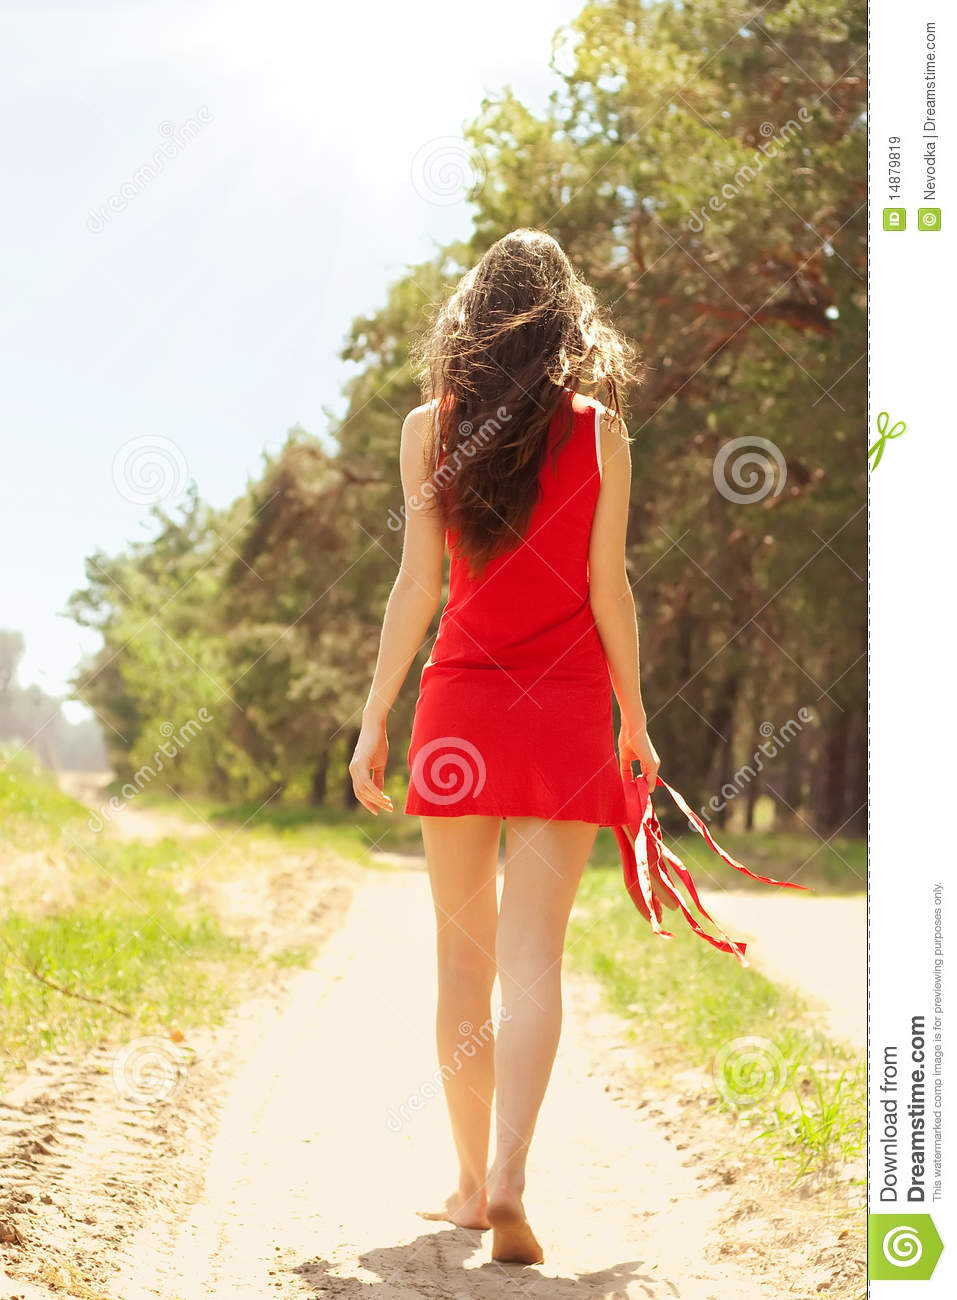 Girl In Red Dress Royalty Free Stock Images - Image: 14879819